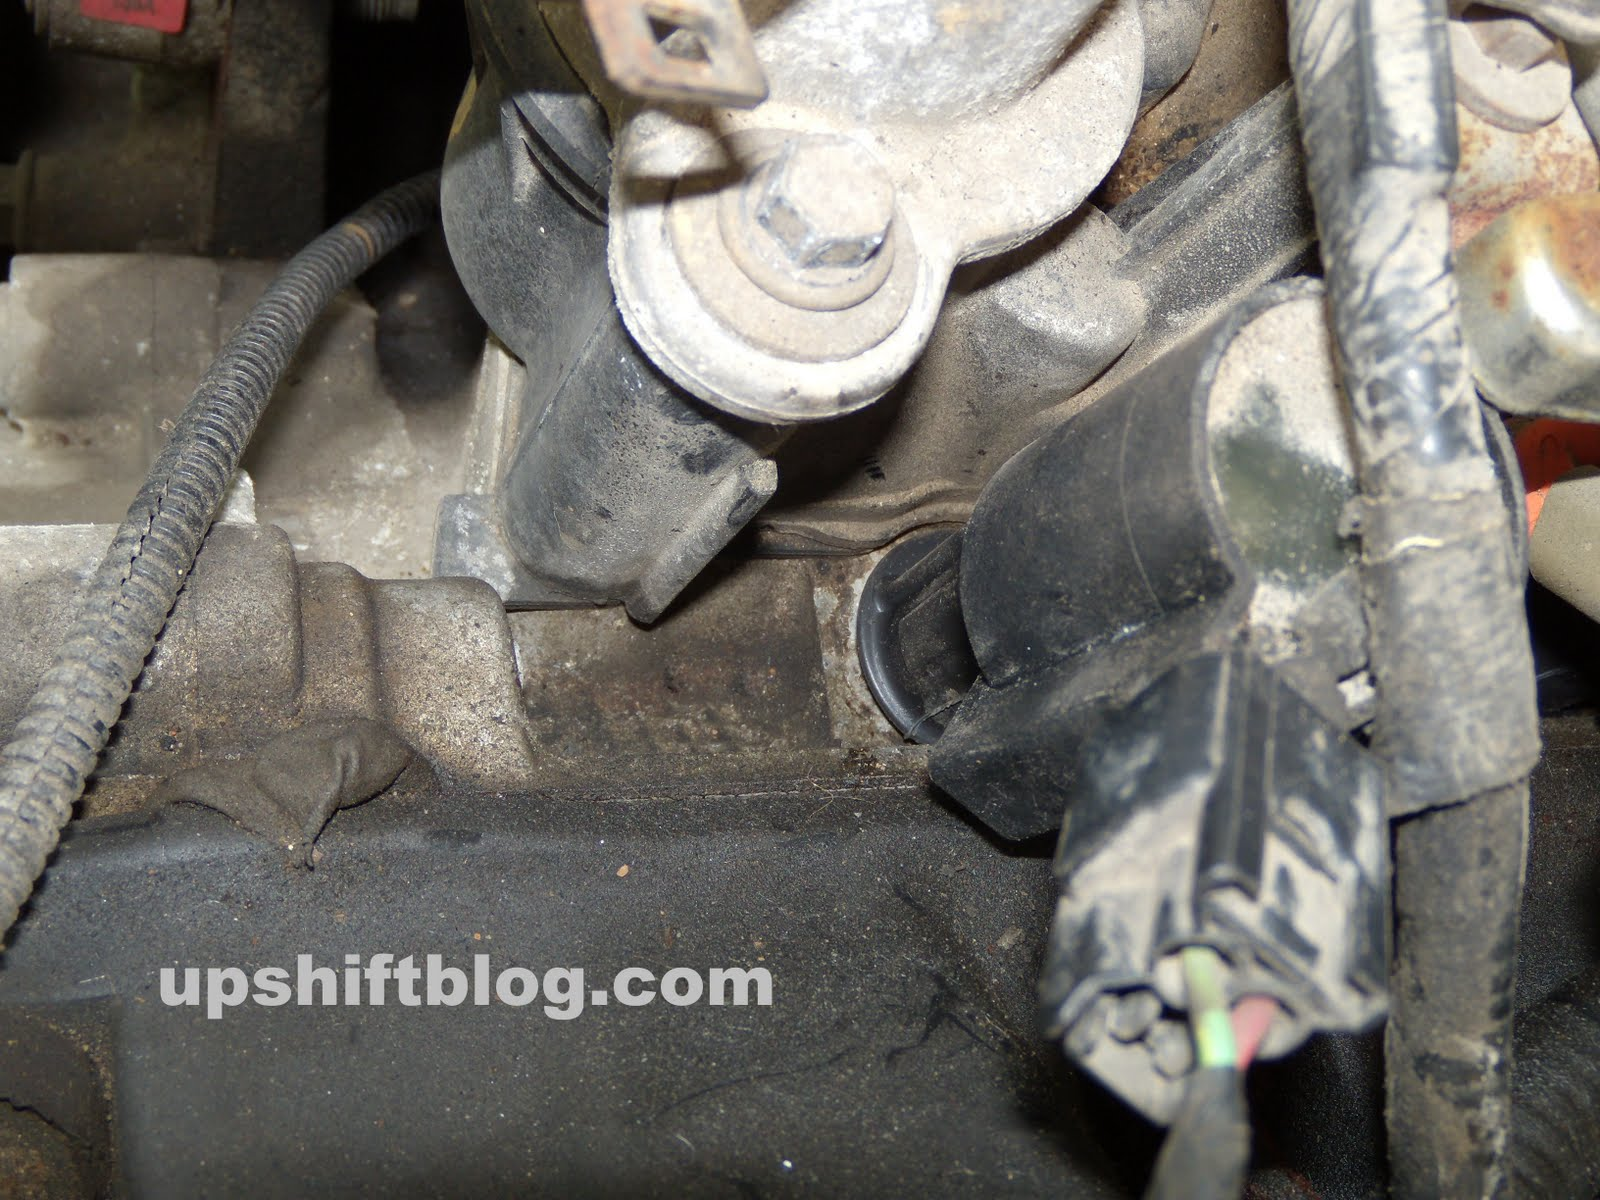 Upshift How To Ford Crown Victoria Tune Up Check Engine Light Spark Plugs Diagram For A 97 F150 4 6l Autos Weblog While Doing This Take Look At The Top Of Head In Between Valve Covers And Intake Manifold Do You See Antifreeze Failure Is